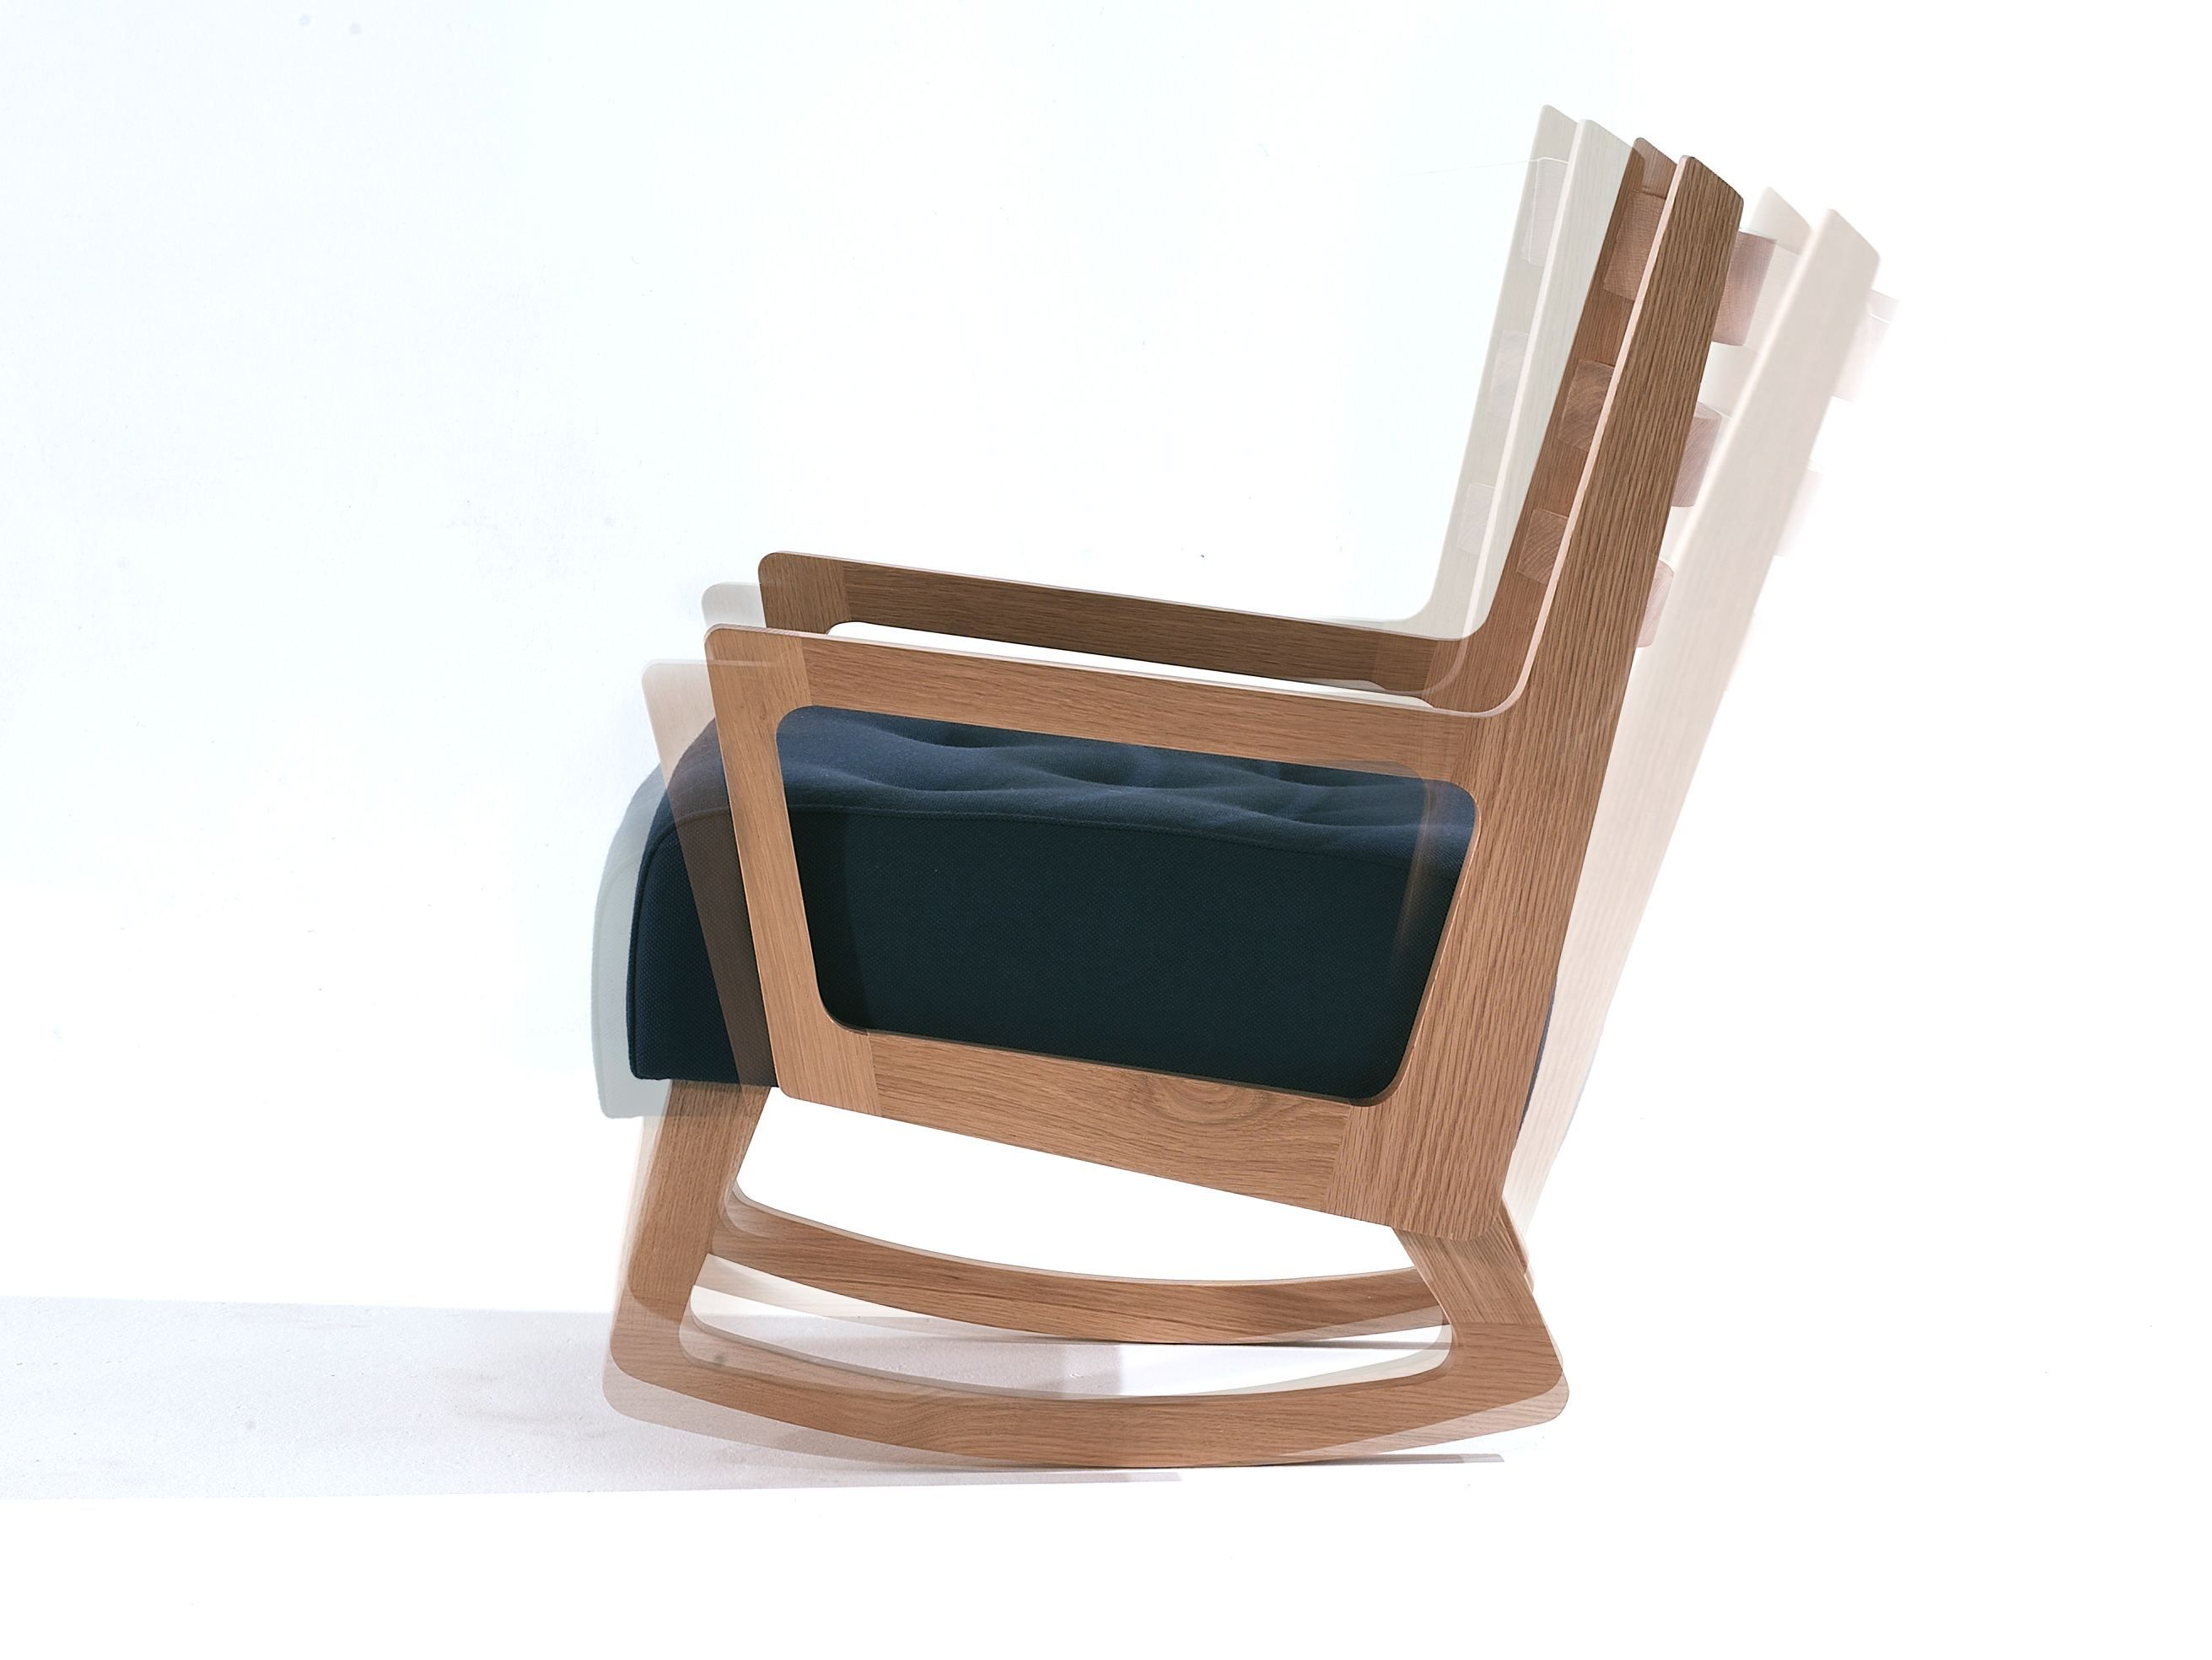 Wooden easy chair designs - Rocking Wooden Easy Chair With Armrests Oliver By And Then Design